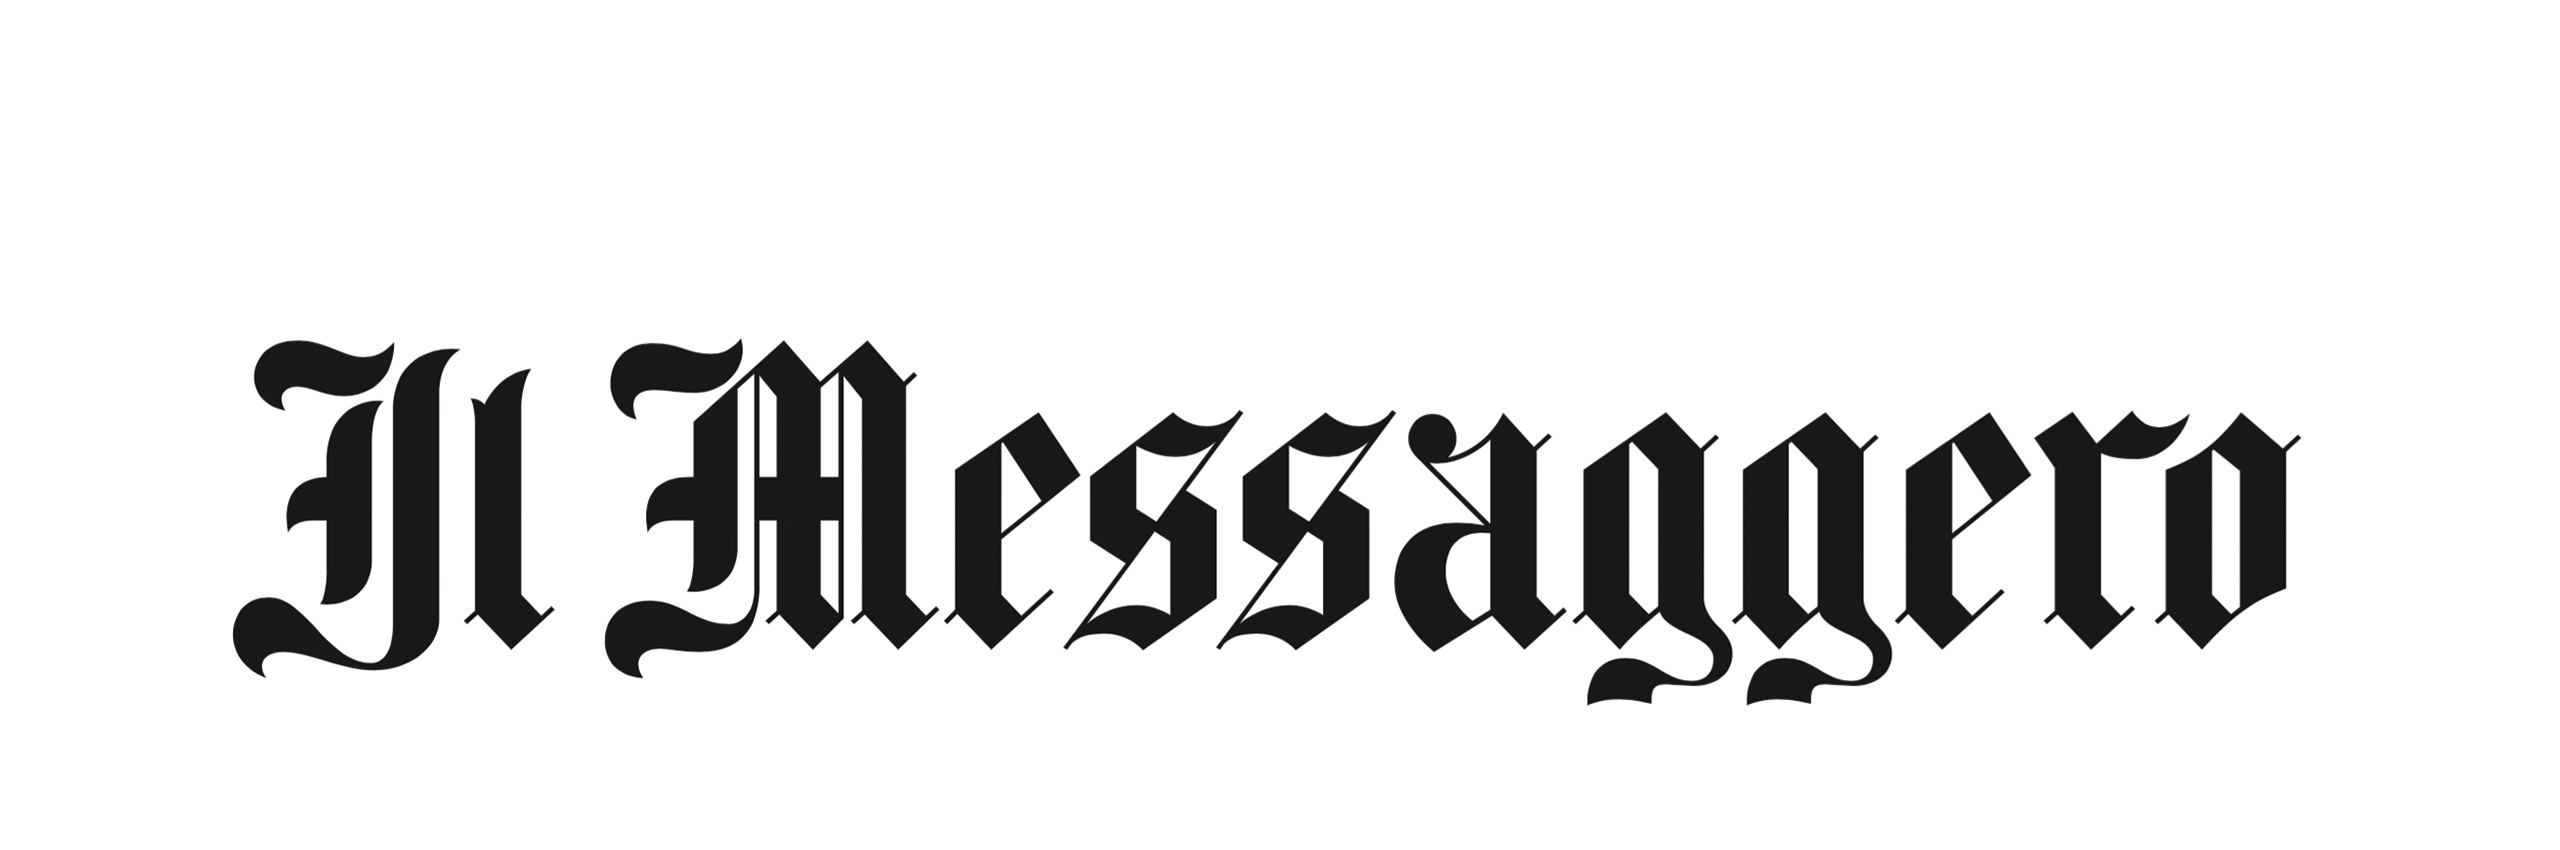 Emtype Foundry Lettering Il Messaggero